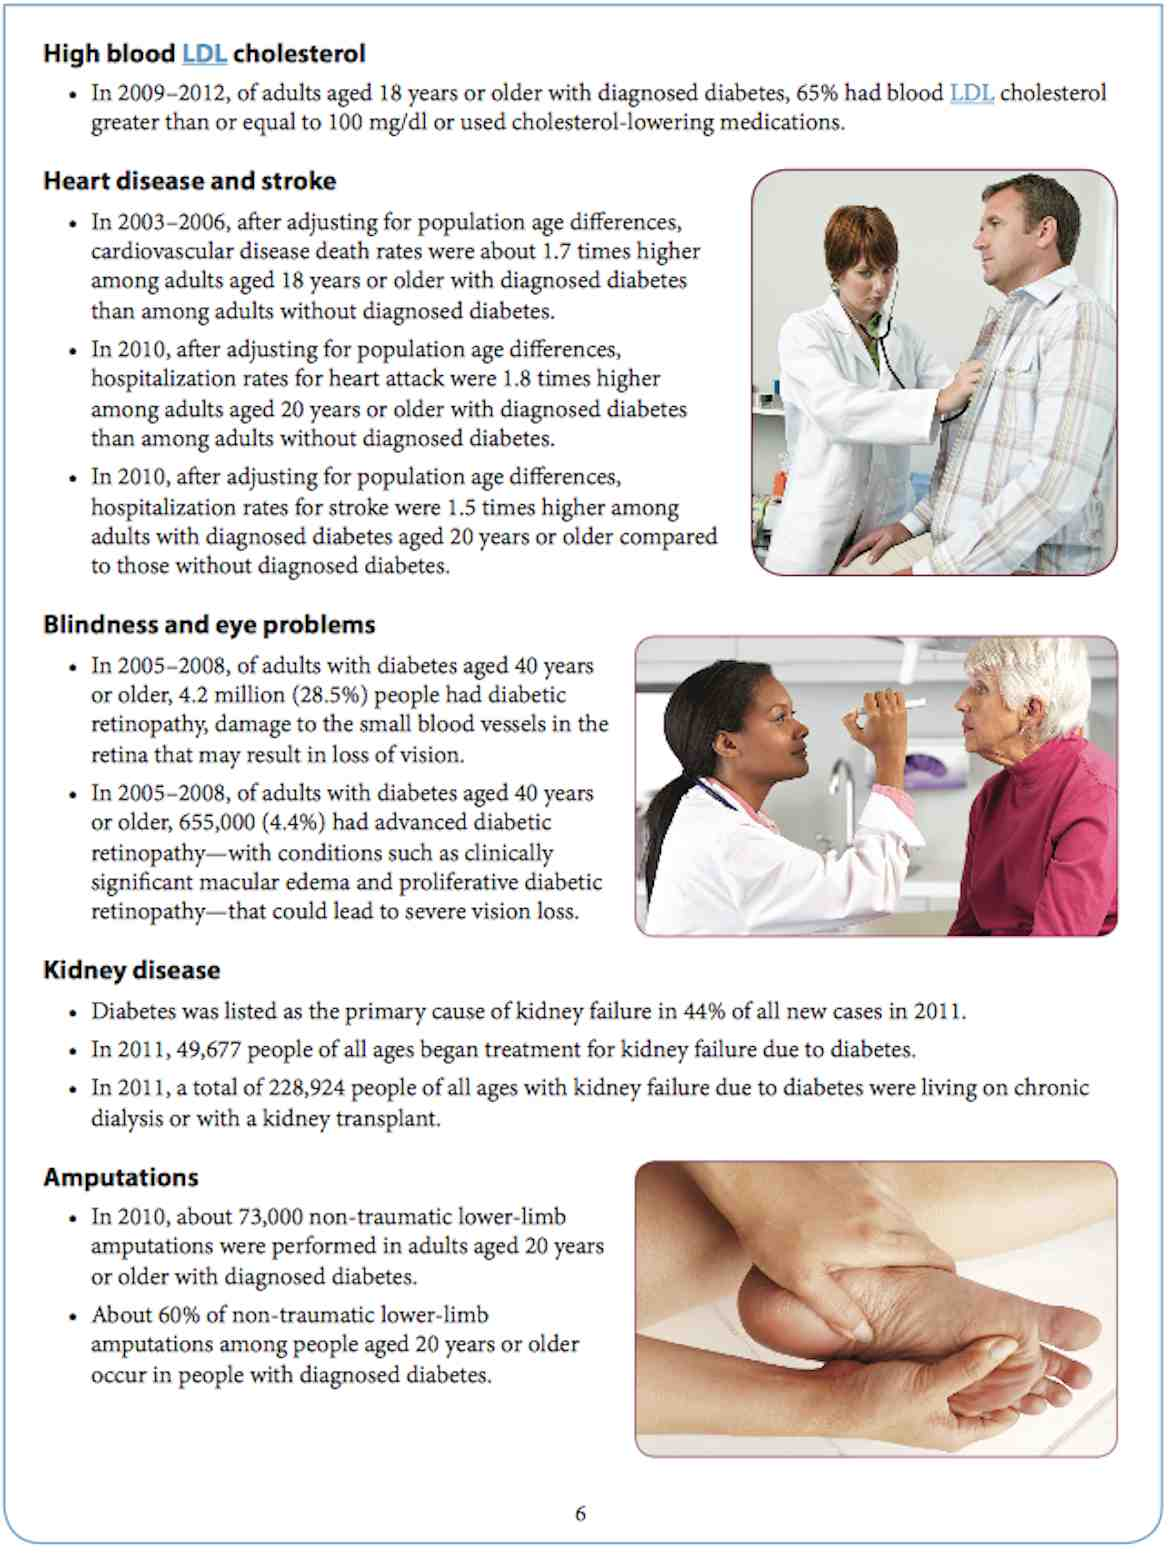 Co-existing Conditions and Complications of Diabetes